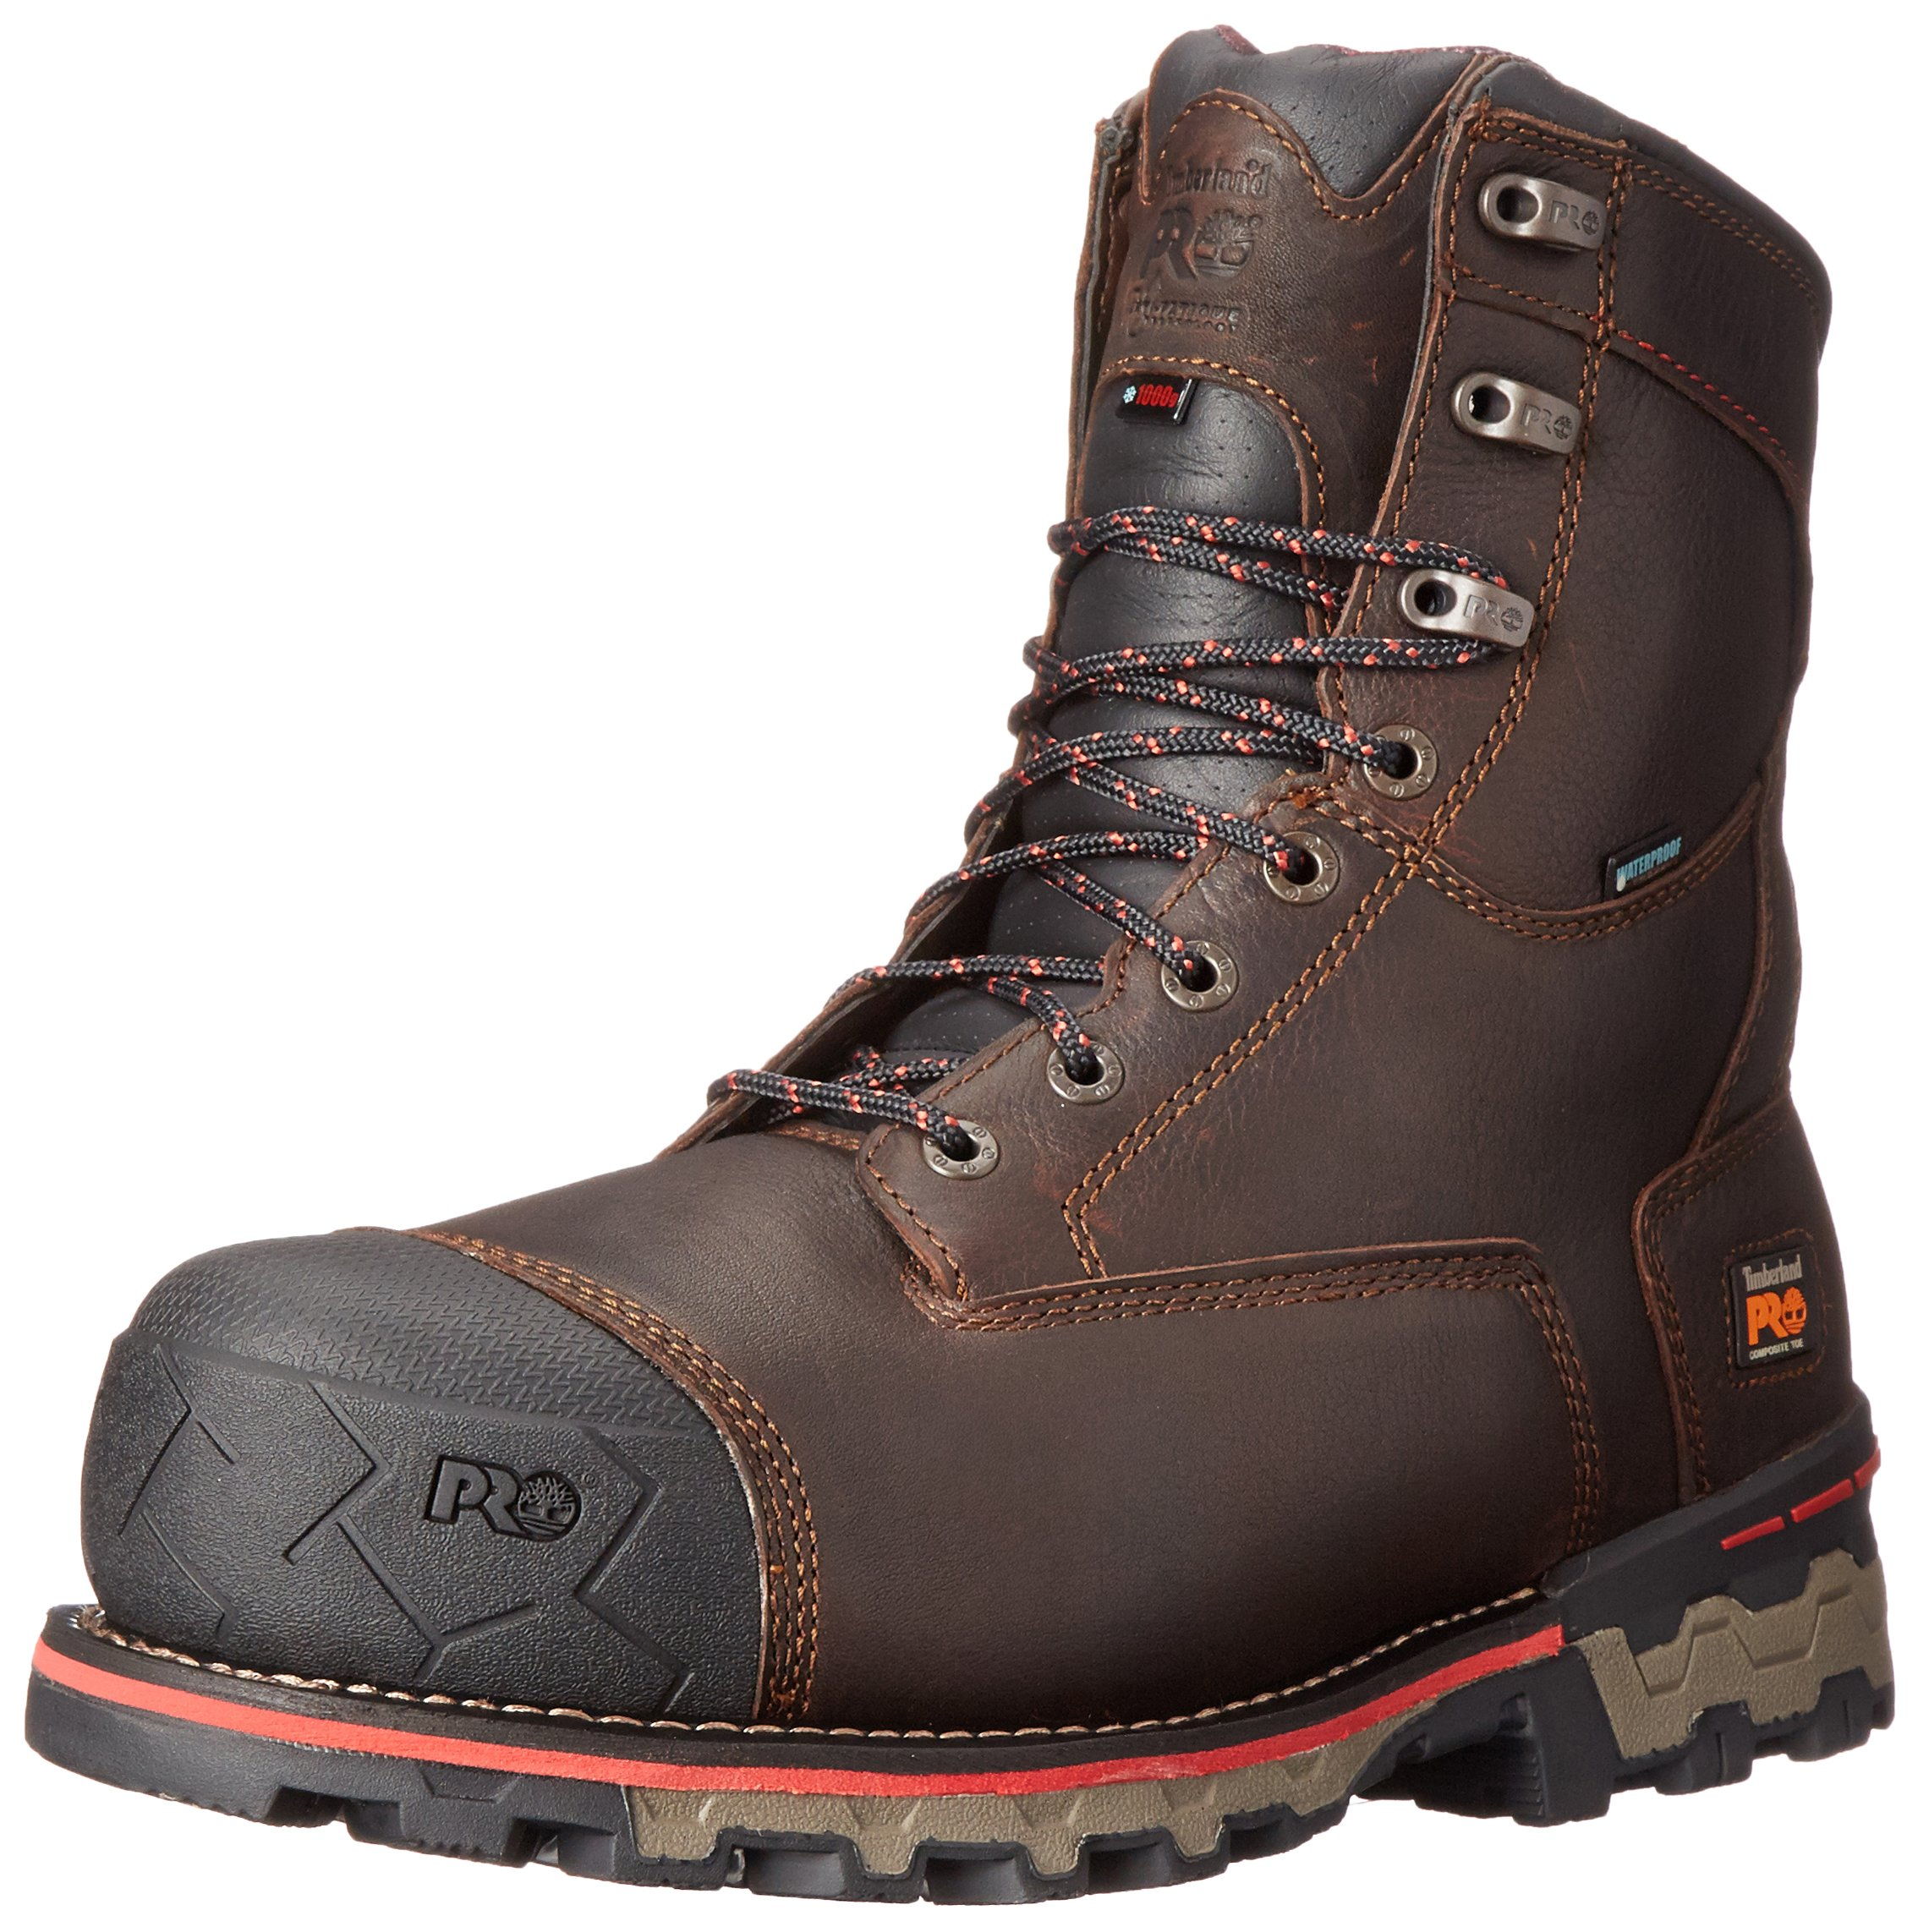 Timberland PRO Men's 8 Inch Boondock Comp Toe Waterproof INS 1000 Work Boot, Brown Tumbled Leather, 11 W US